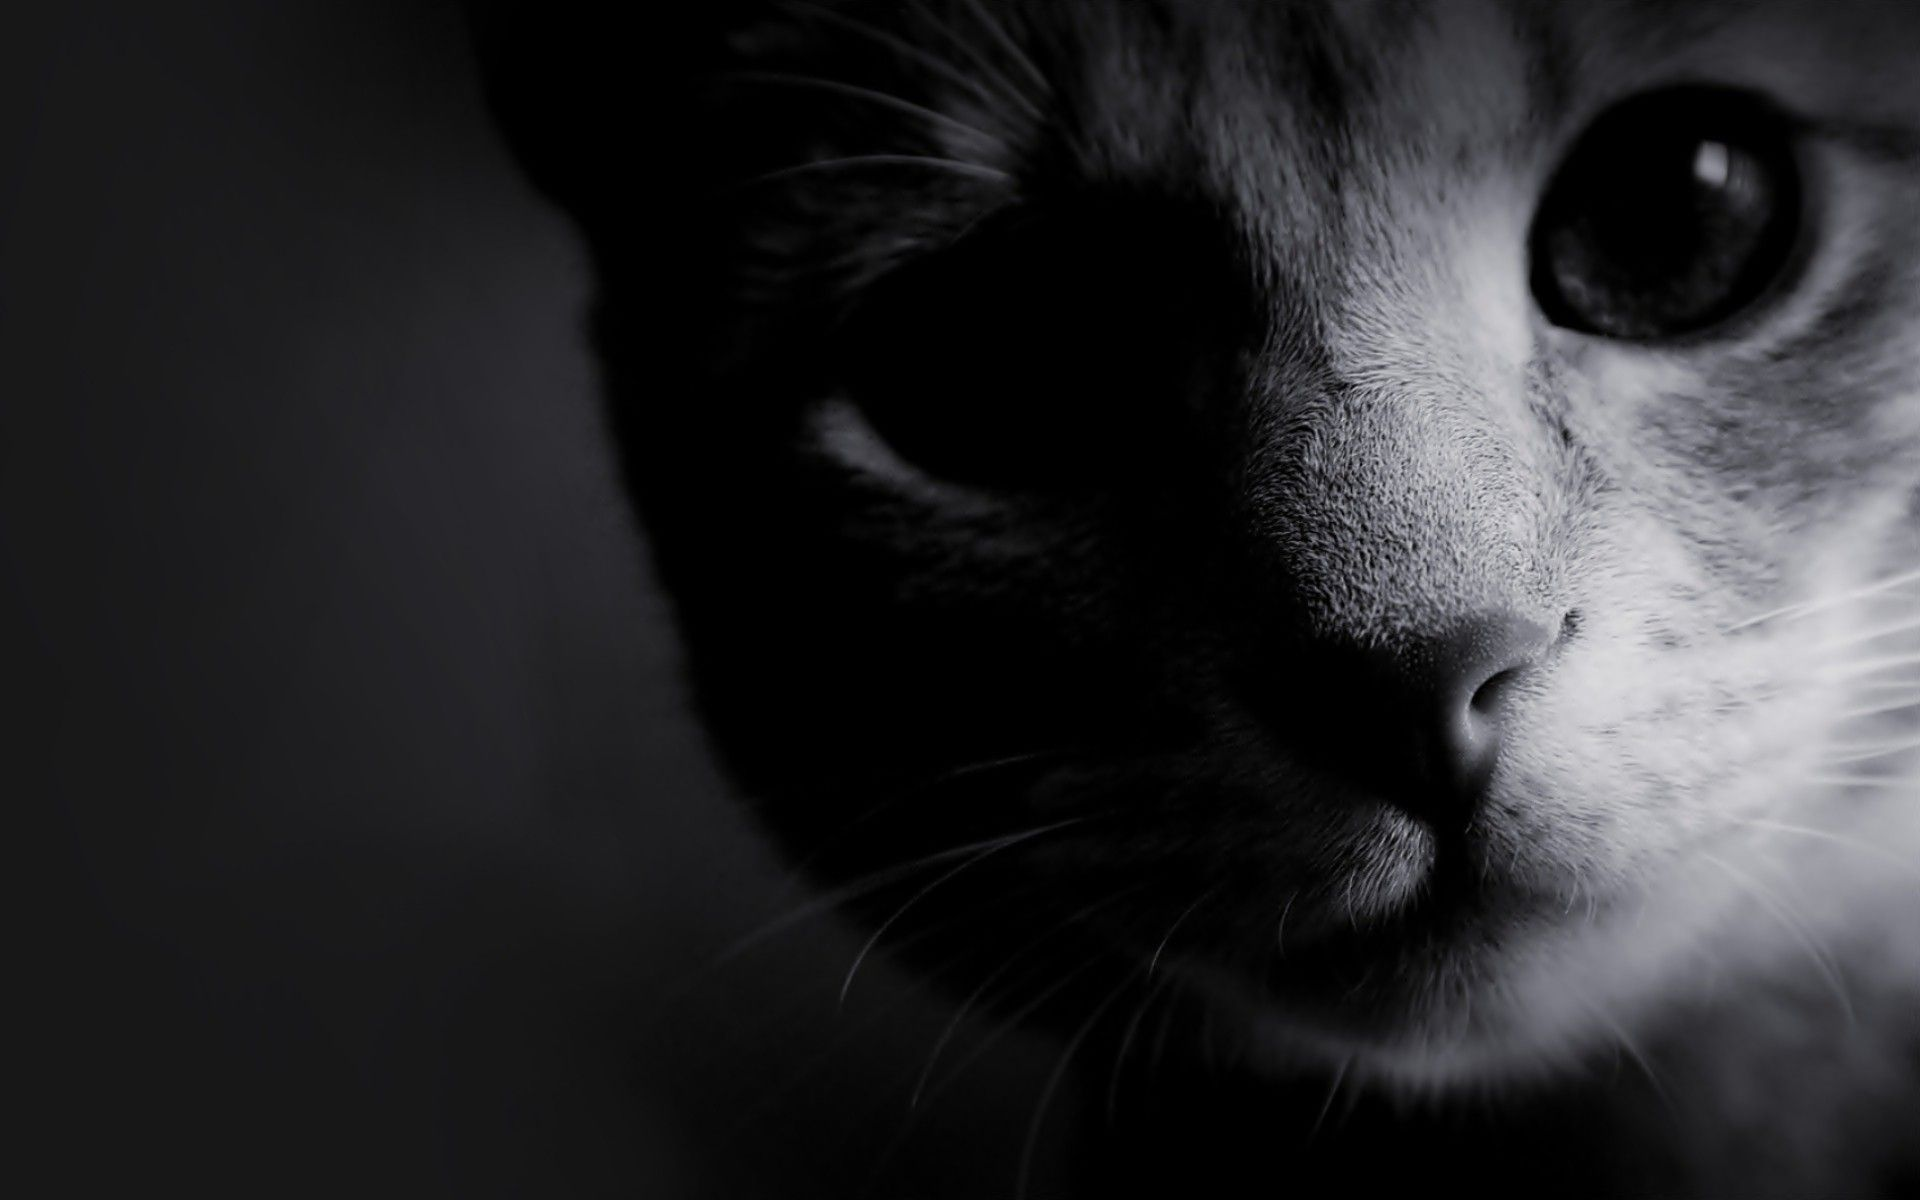 black and white photos | black and white cats wallpaper | black